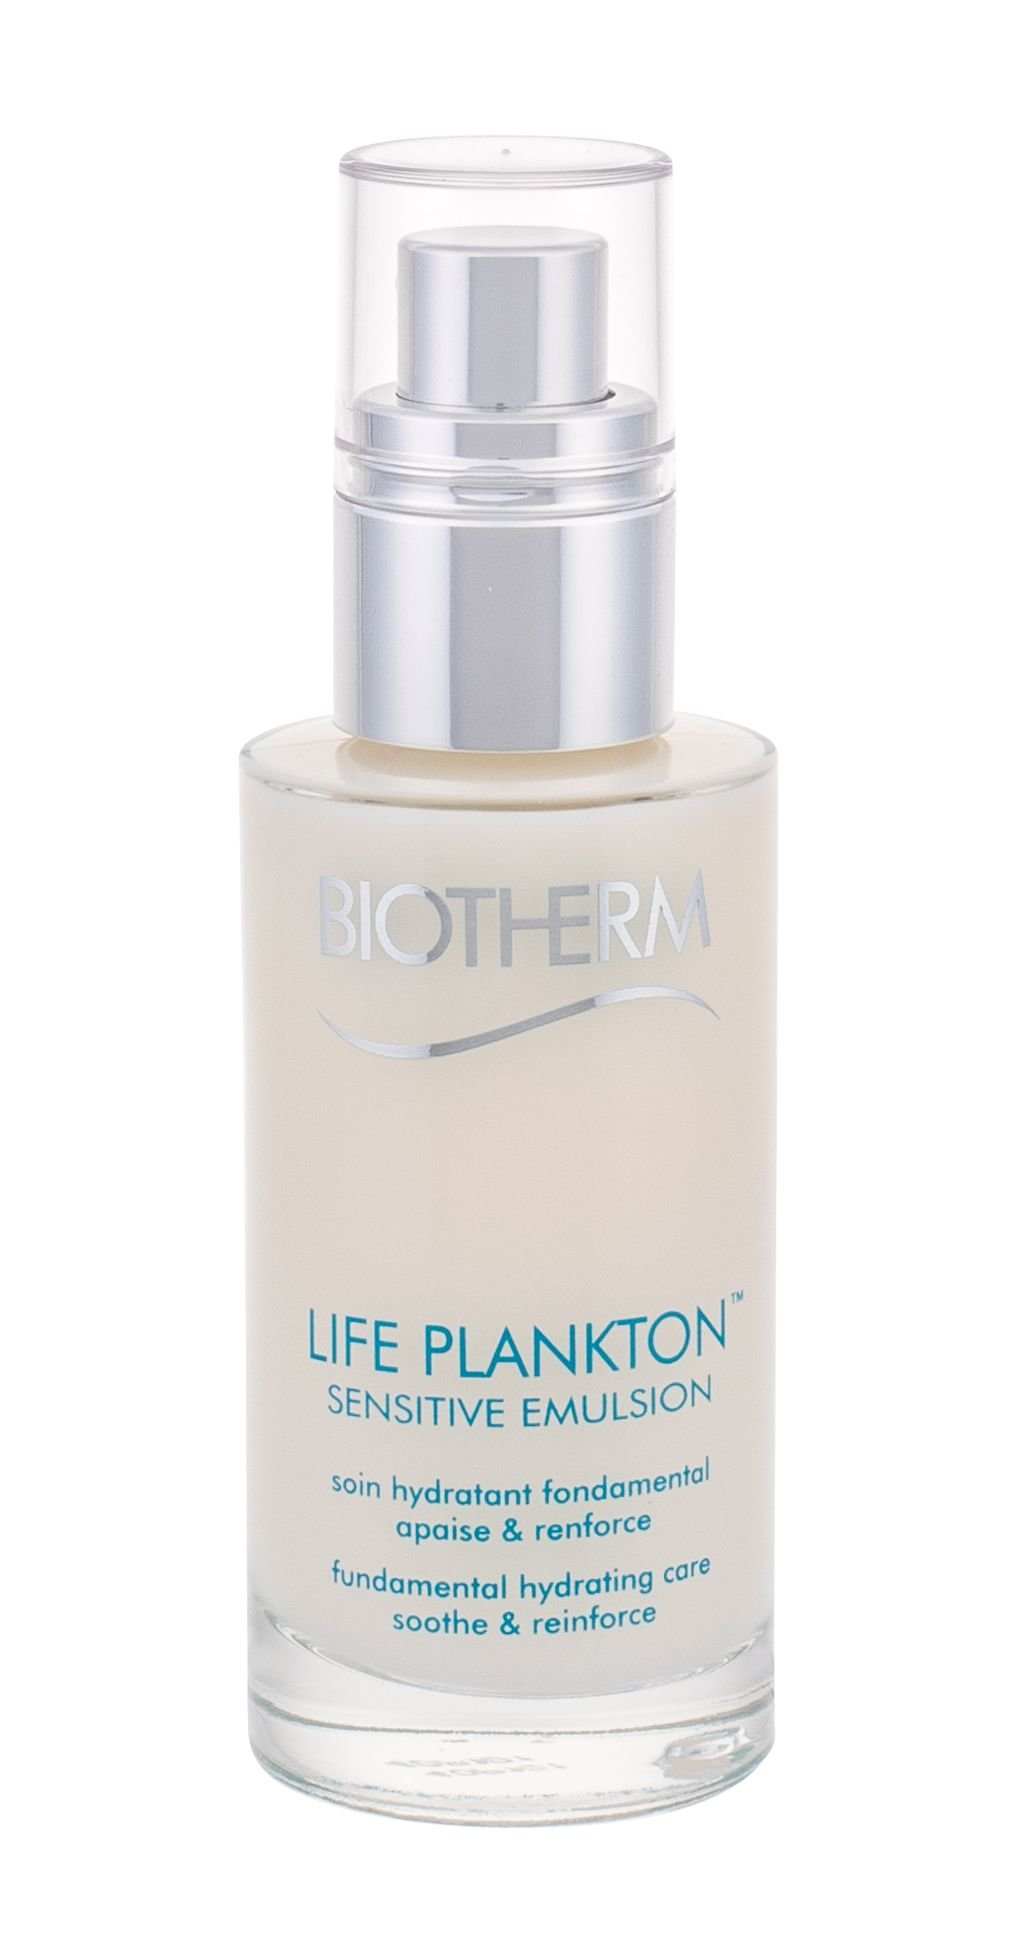 Biotherm Life Plankton Cosmetic 50ml